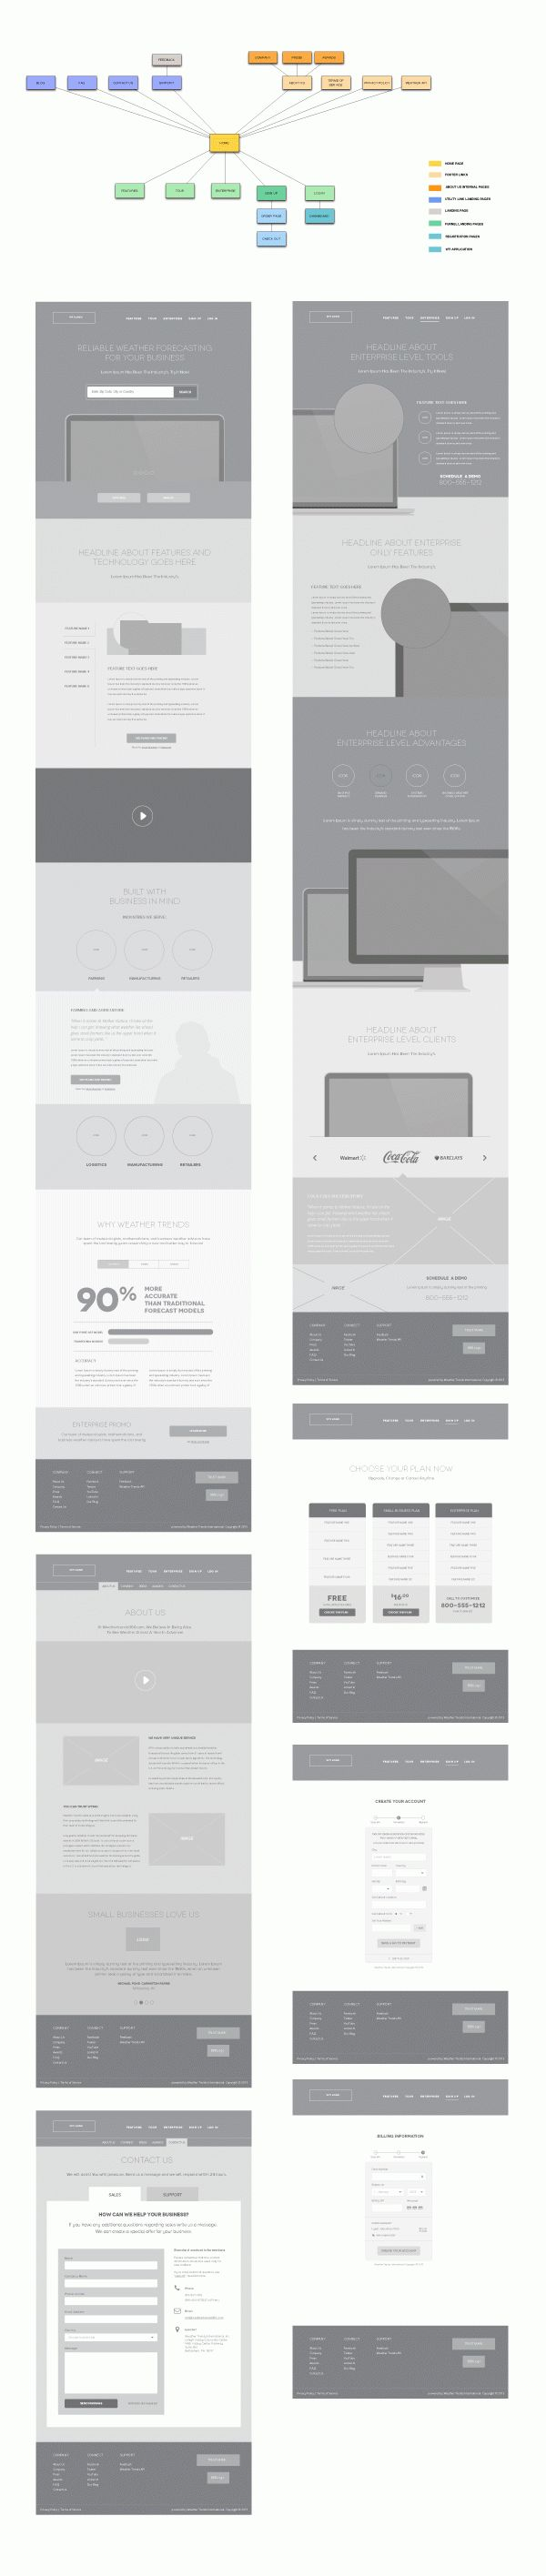 Weather Trends Sales Funnel by Michael Pons, via Behance